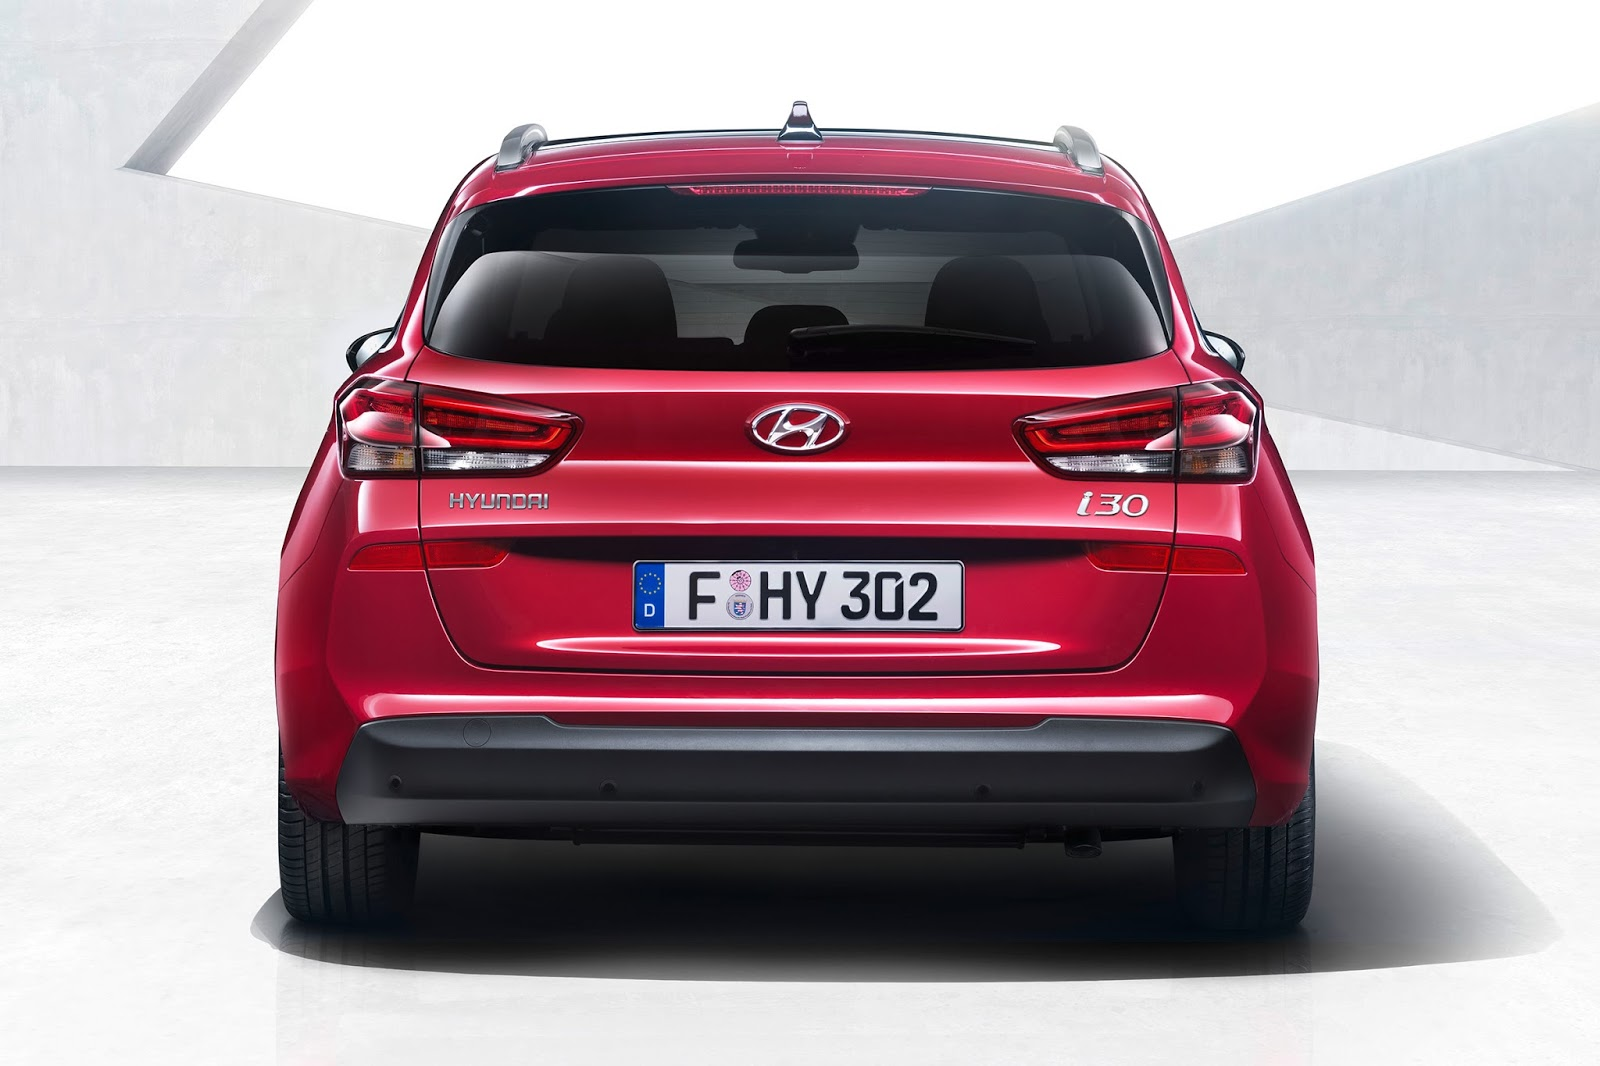 2017 hyundai i30 wagon revealed has shooting brake profile autoevolution. Black Bedroom Furniture Sets. Home Design Ideas